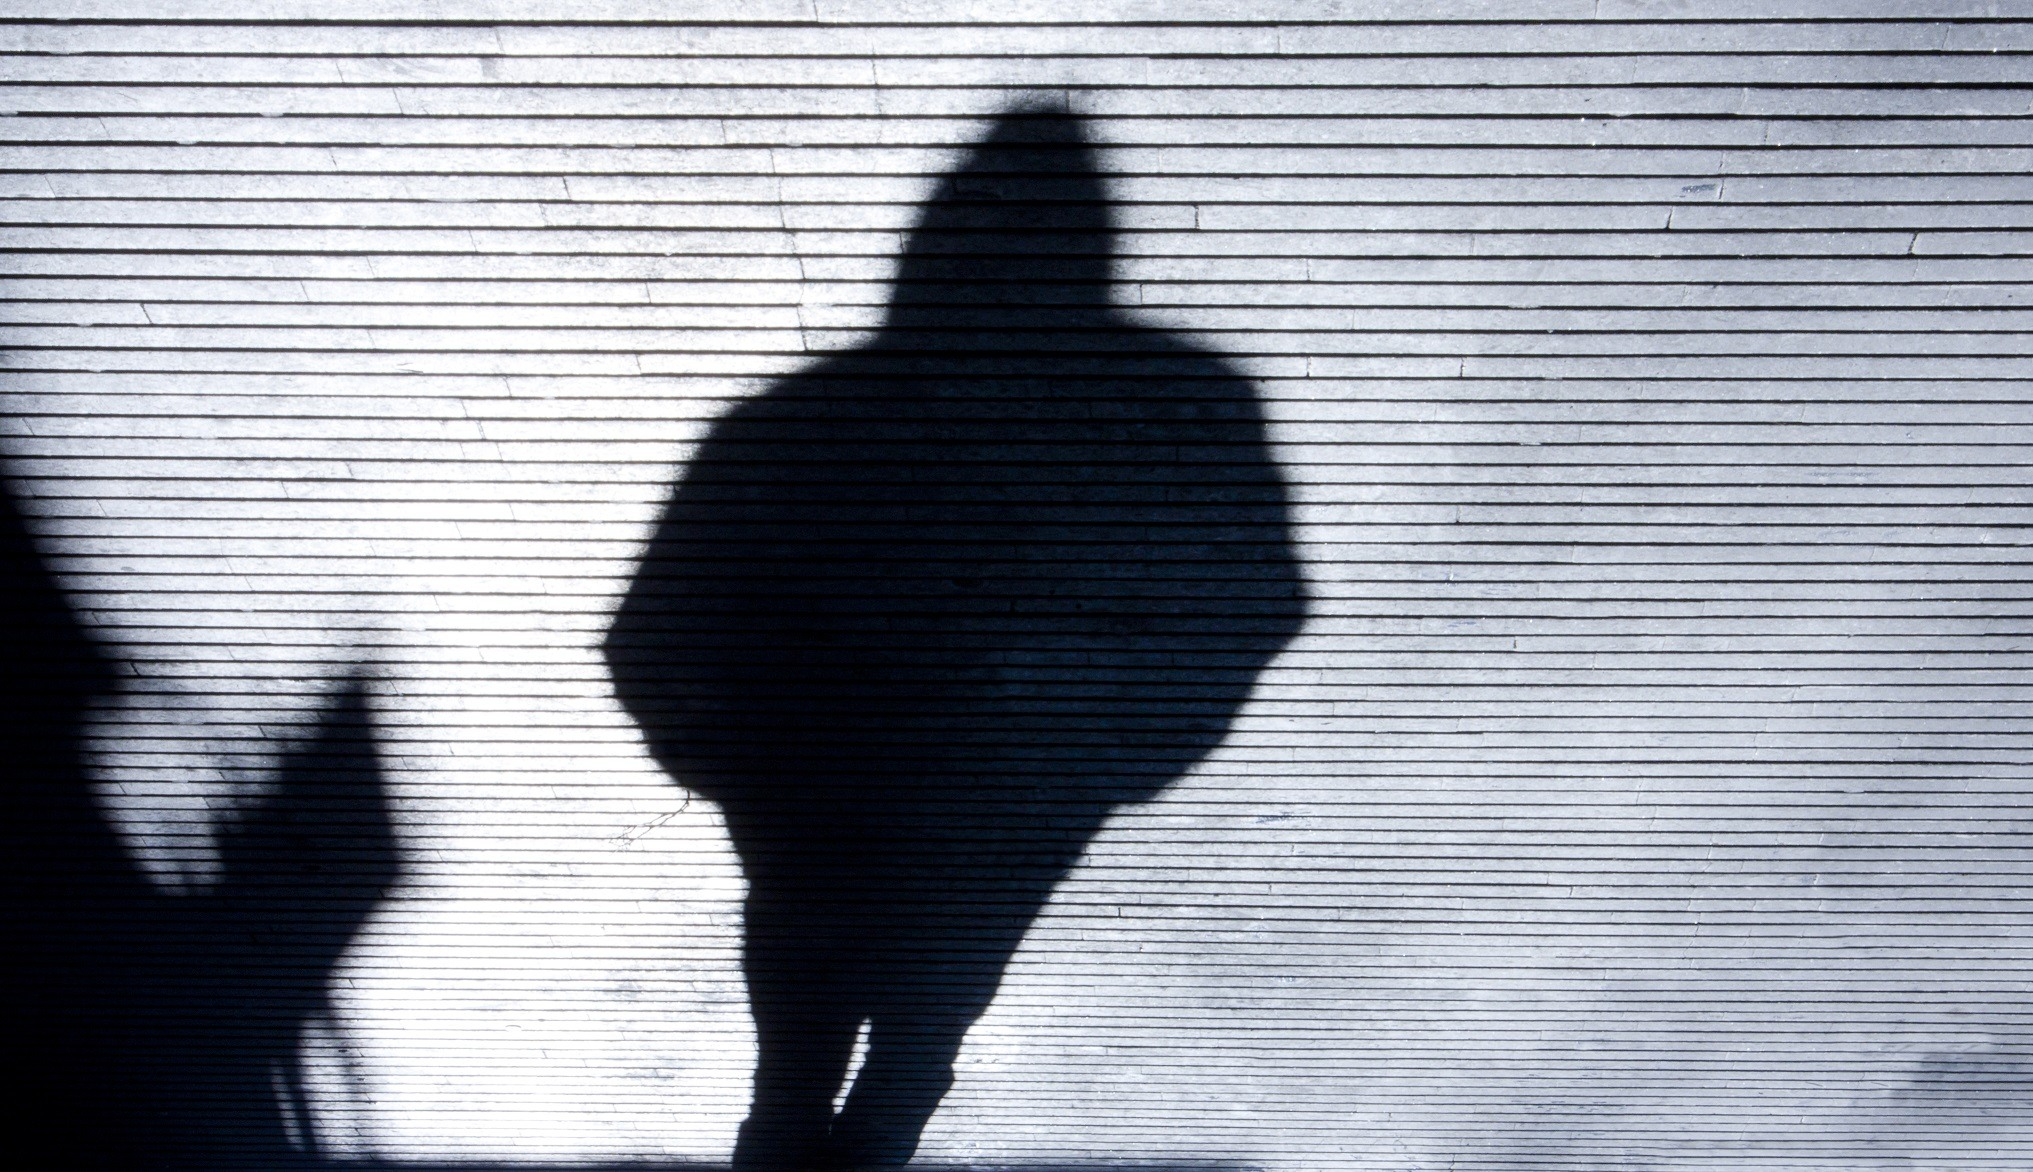 Shadow of person walking with hands in pockets and hood up